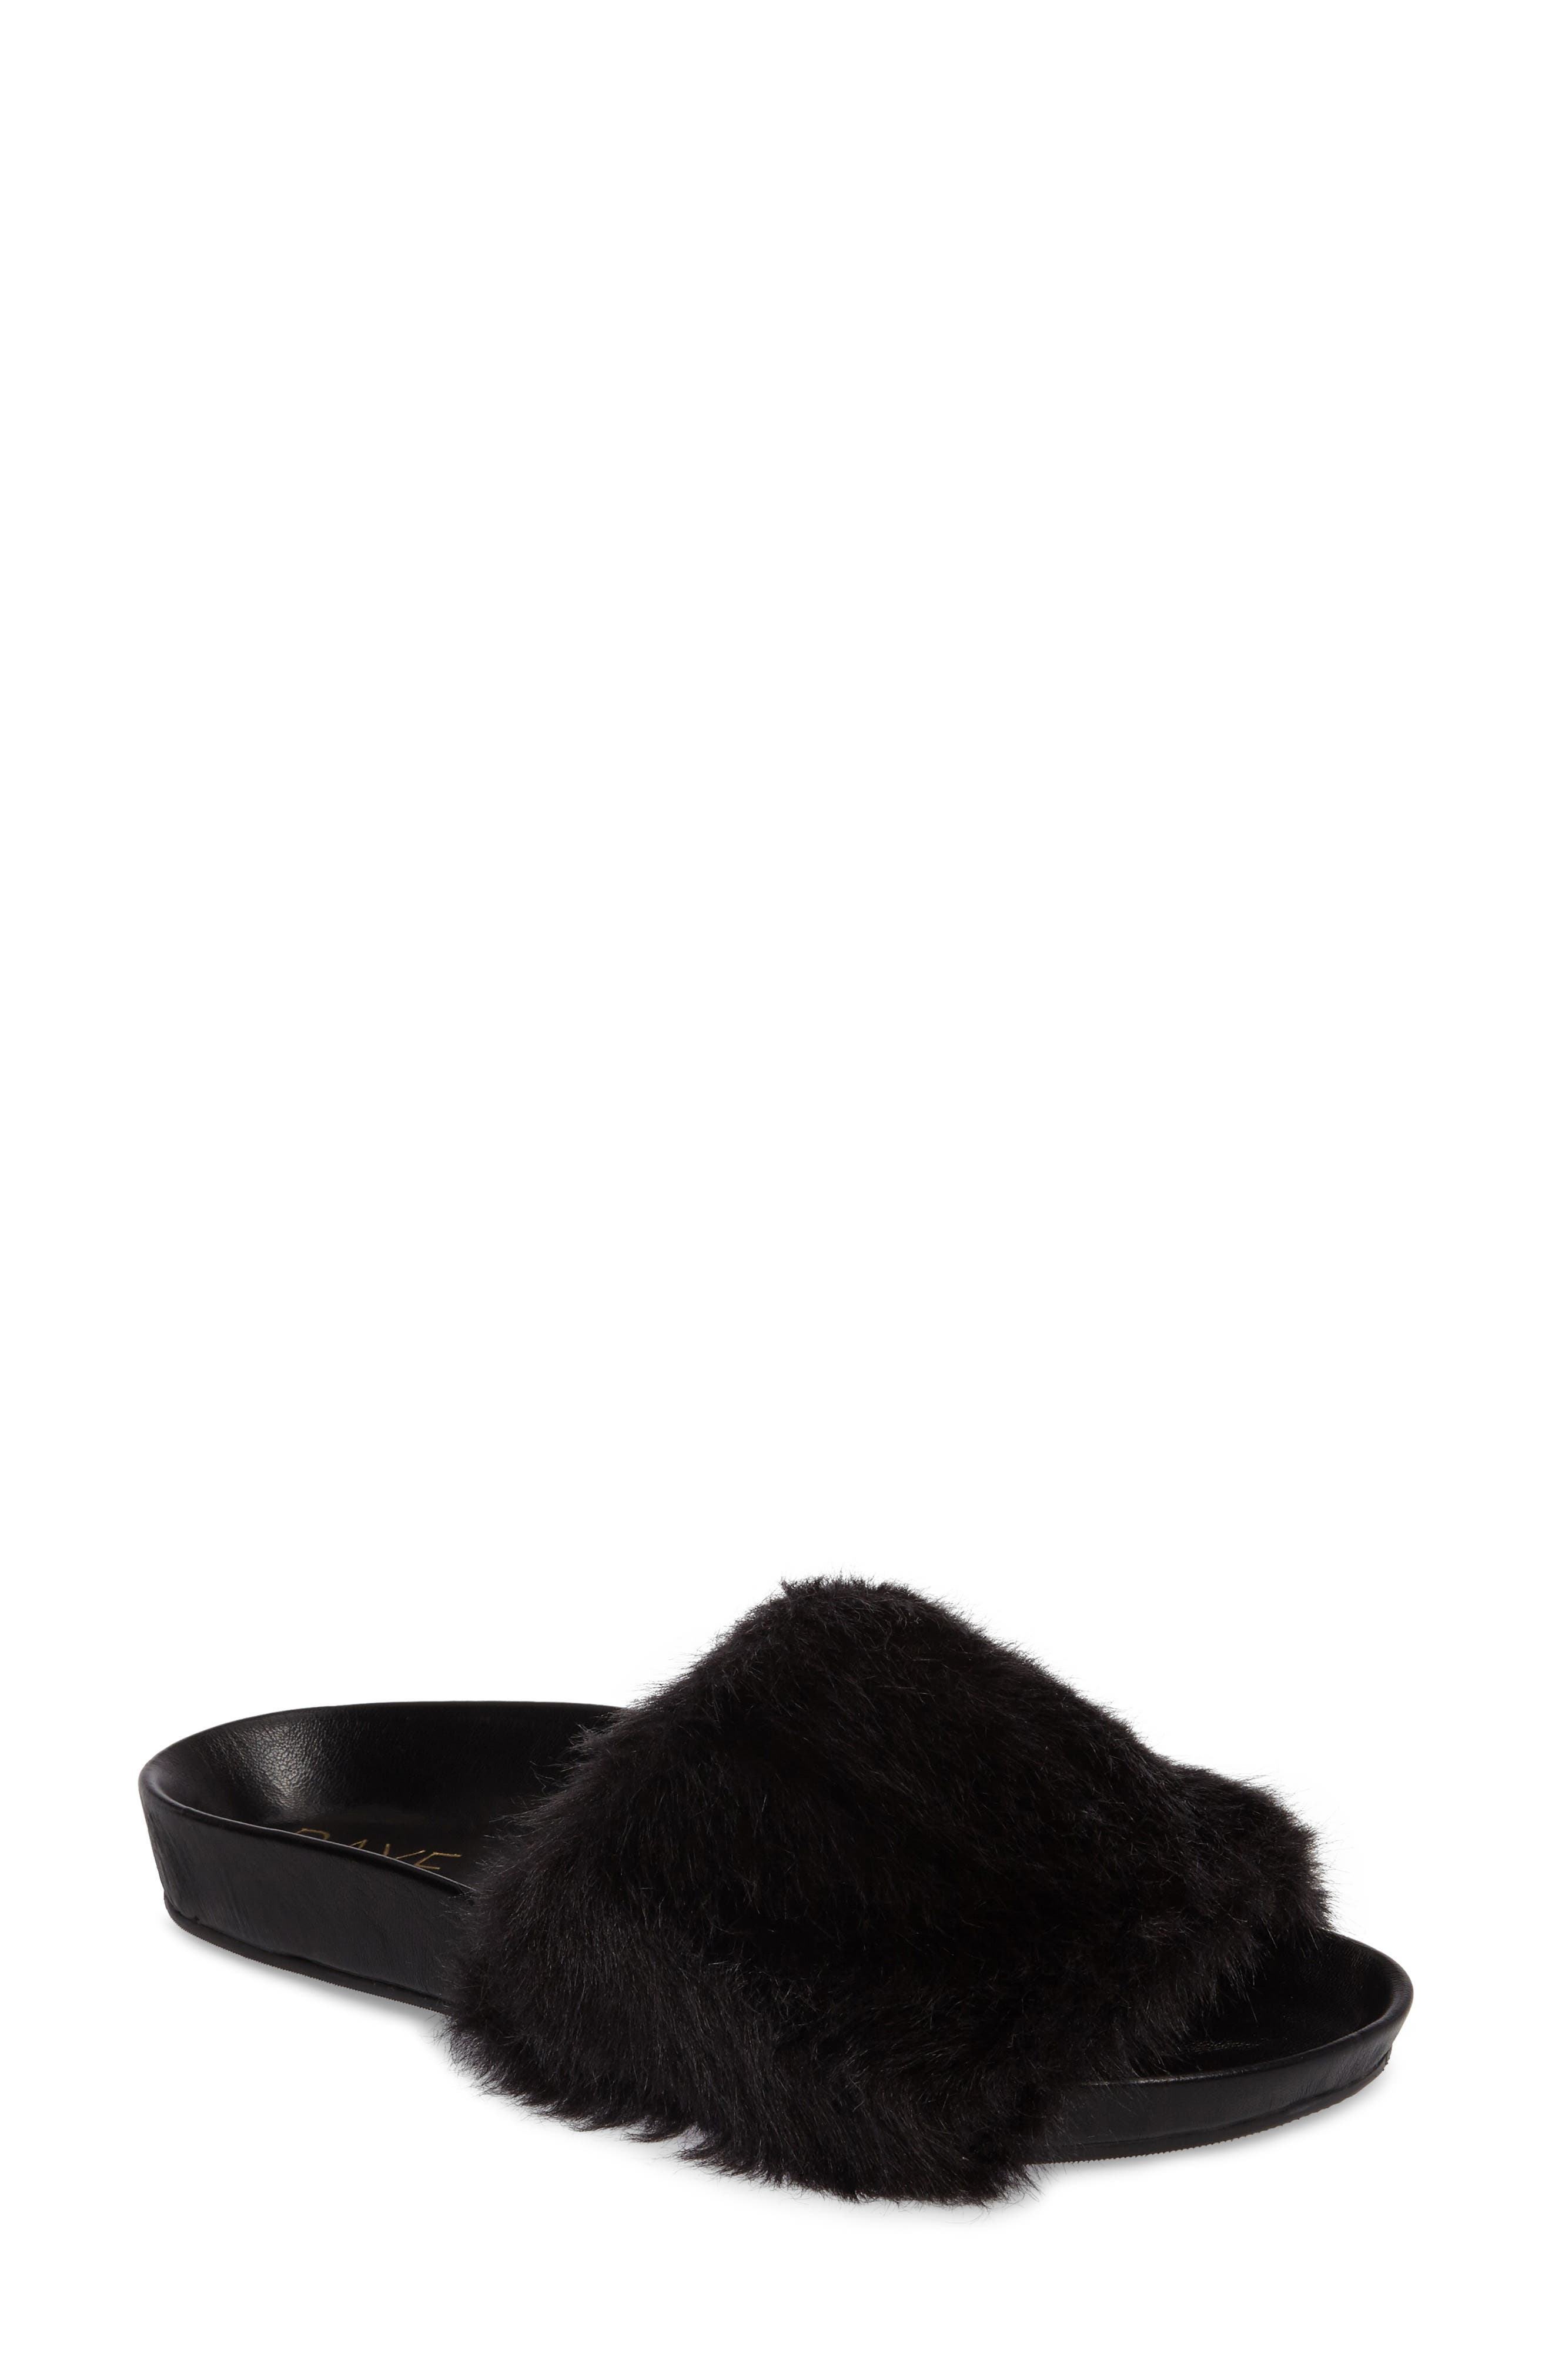 Sirius Faux Fur Slide,                         Main,                         color, 003